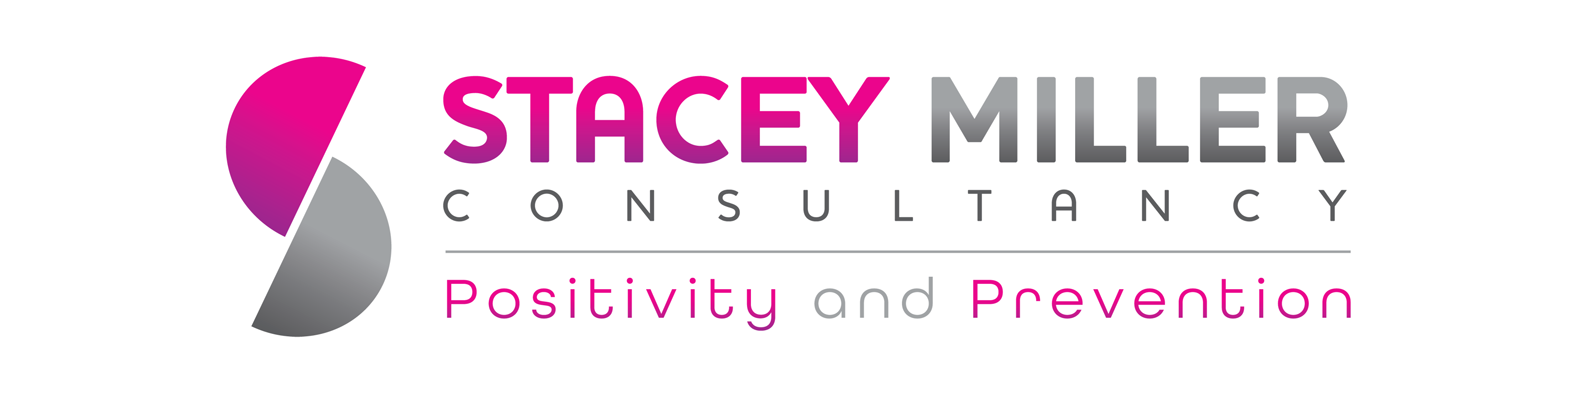 Stacey Miller Consultancy | Substance Misuse, Mental Health and Domestic Abuse Education and Training Consultant